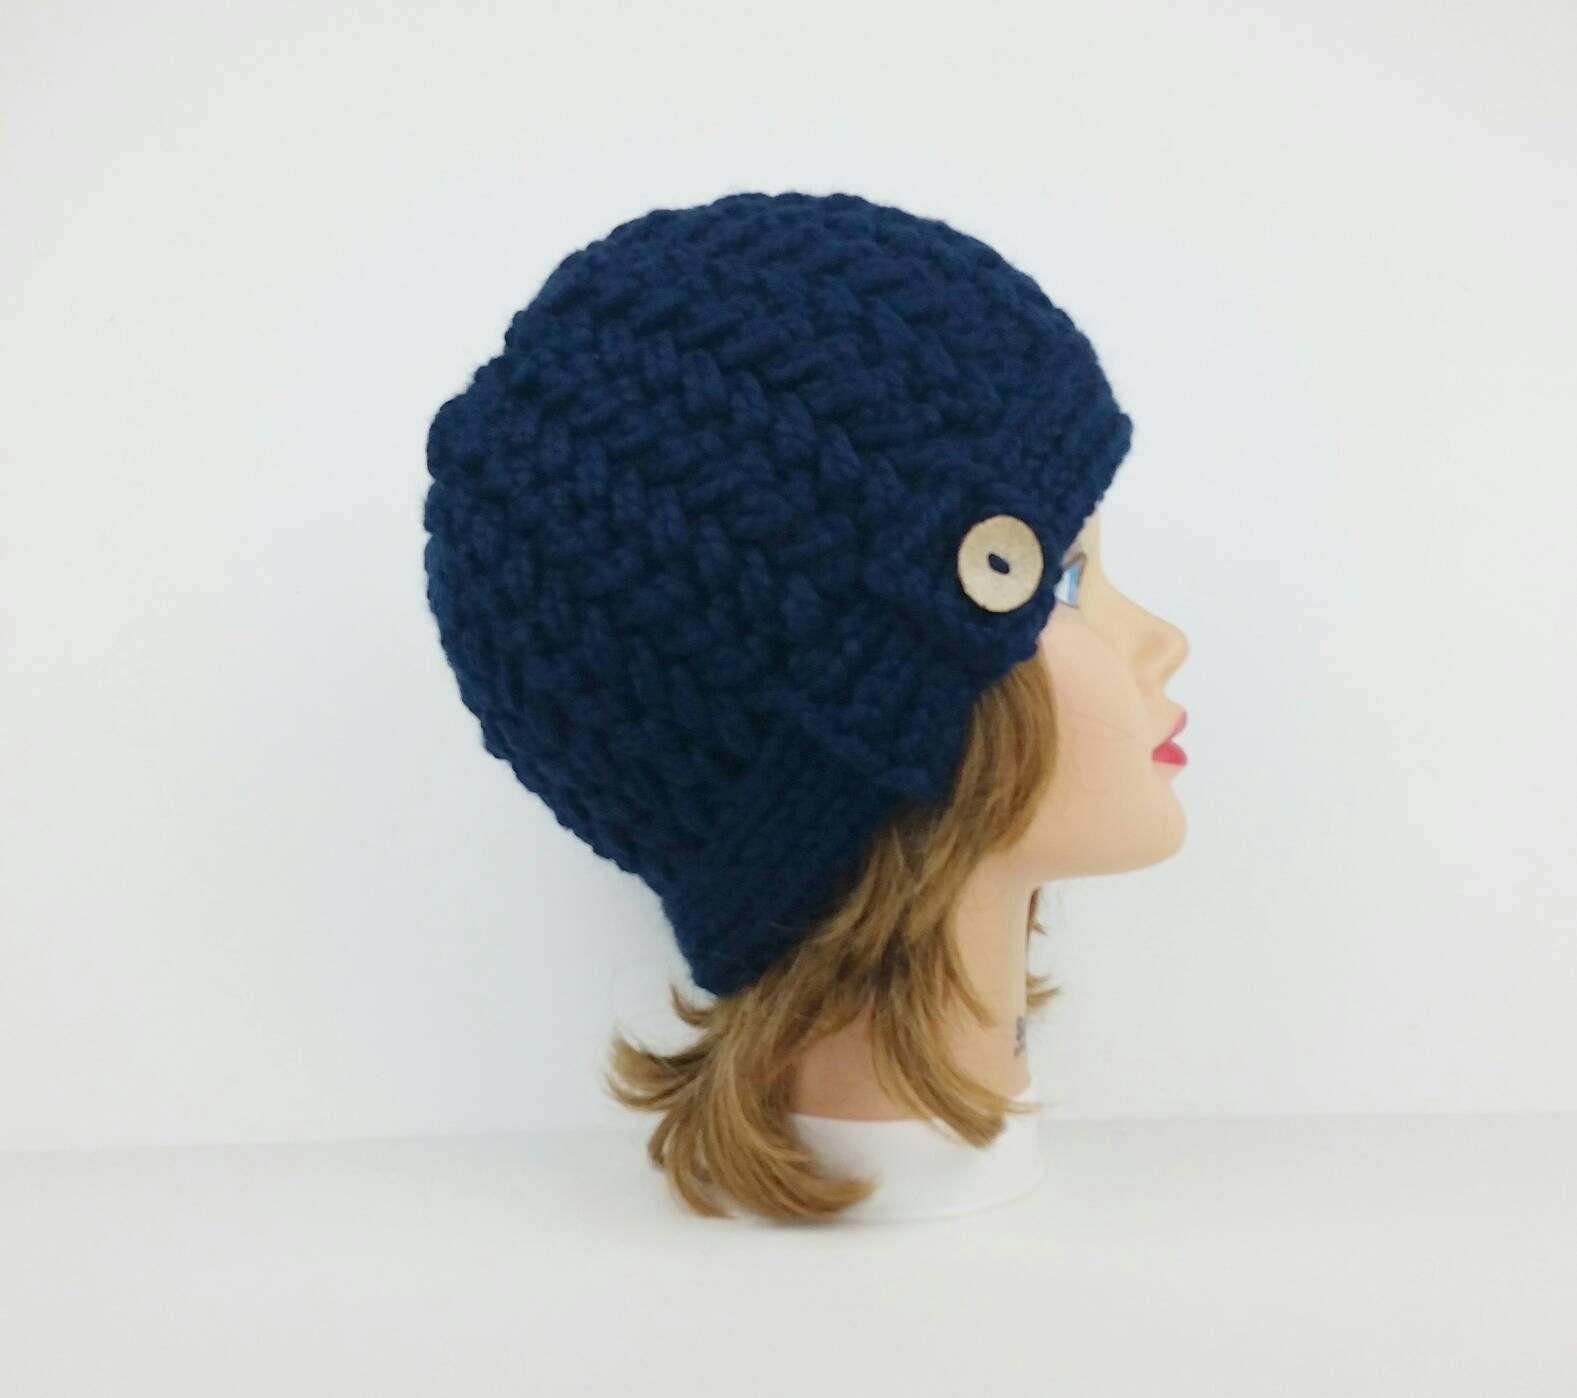 Knit Beanie Hat With Button, Chunky Knit Hat, Women\'s Hats, Navy ...